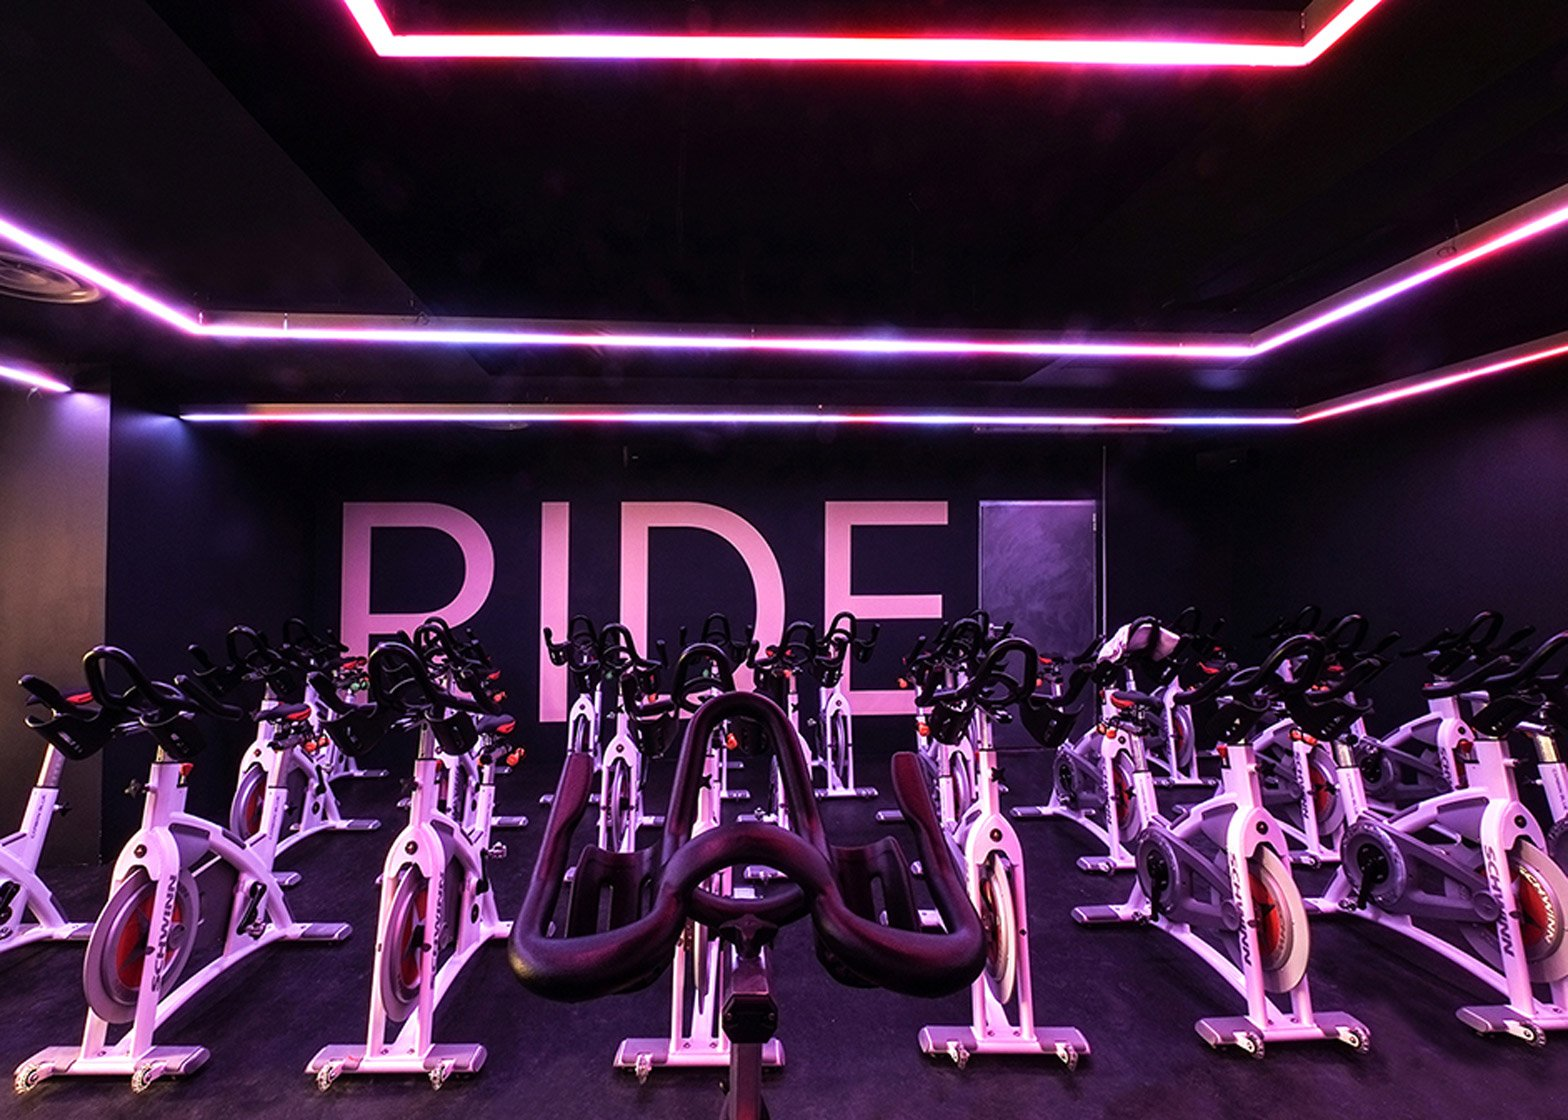 Ride spinning studio by Das Studio